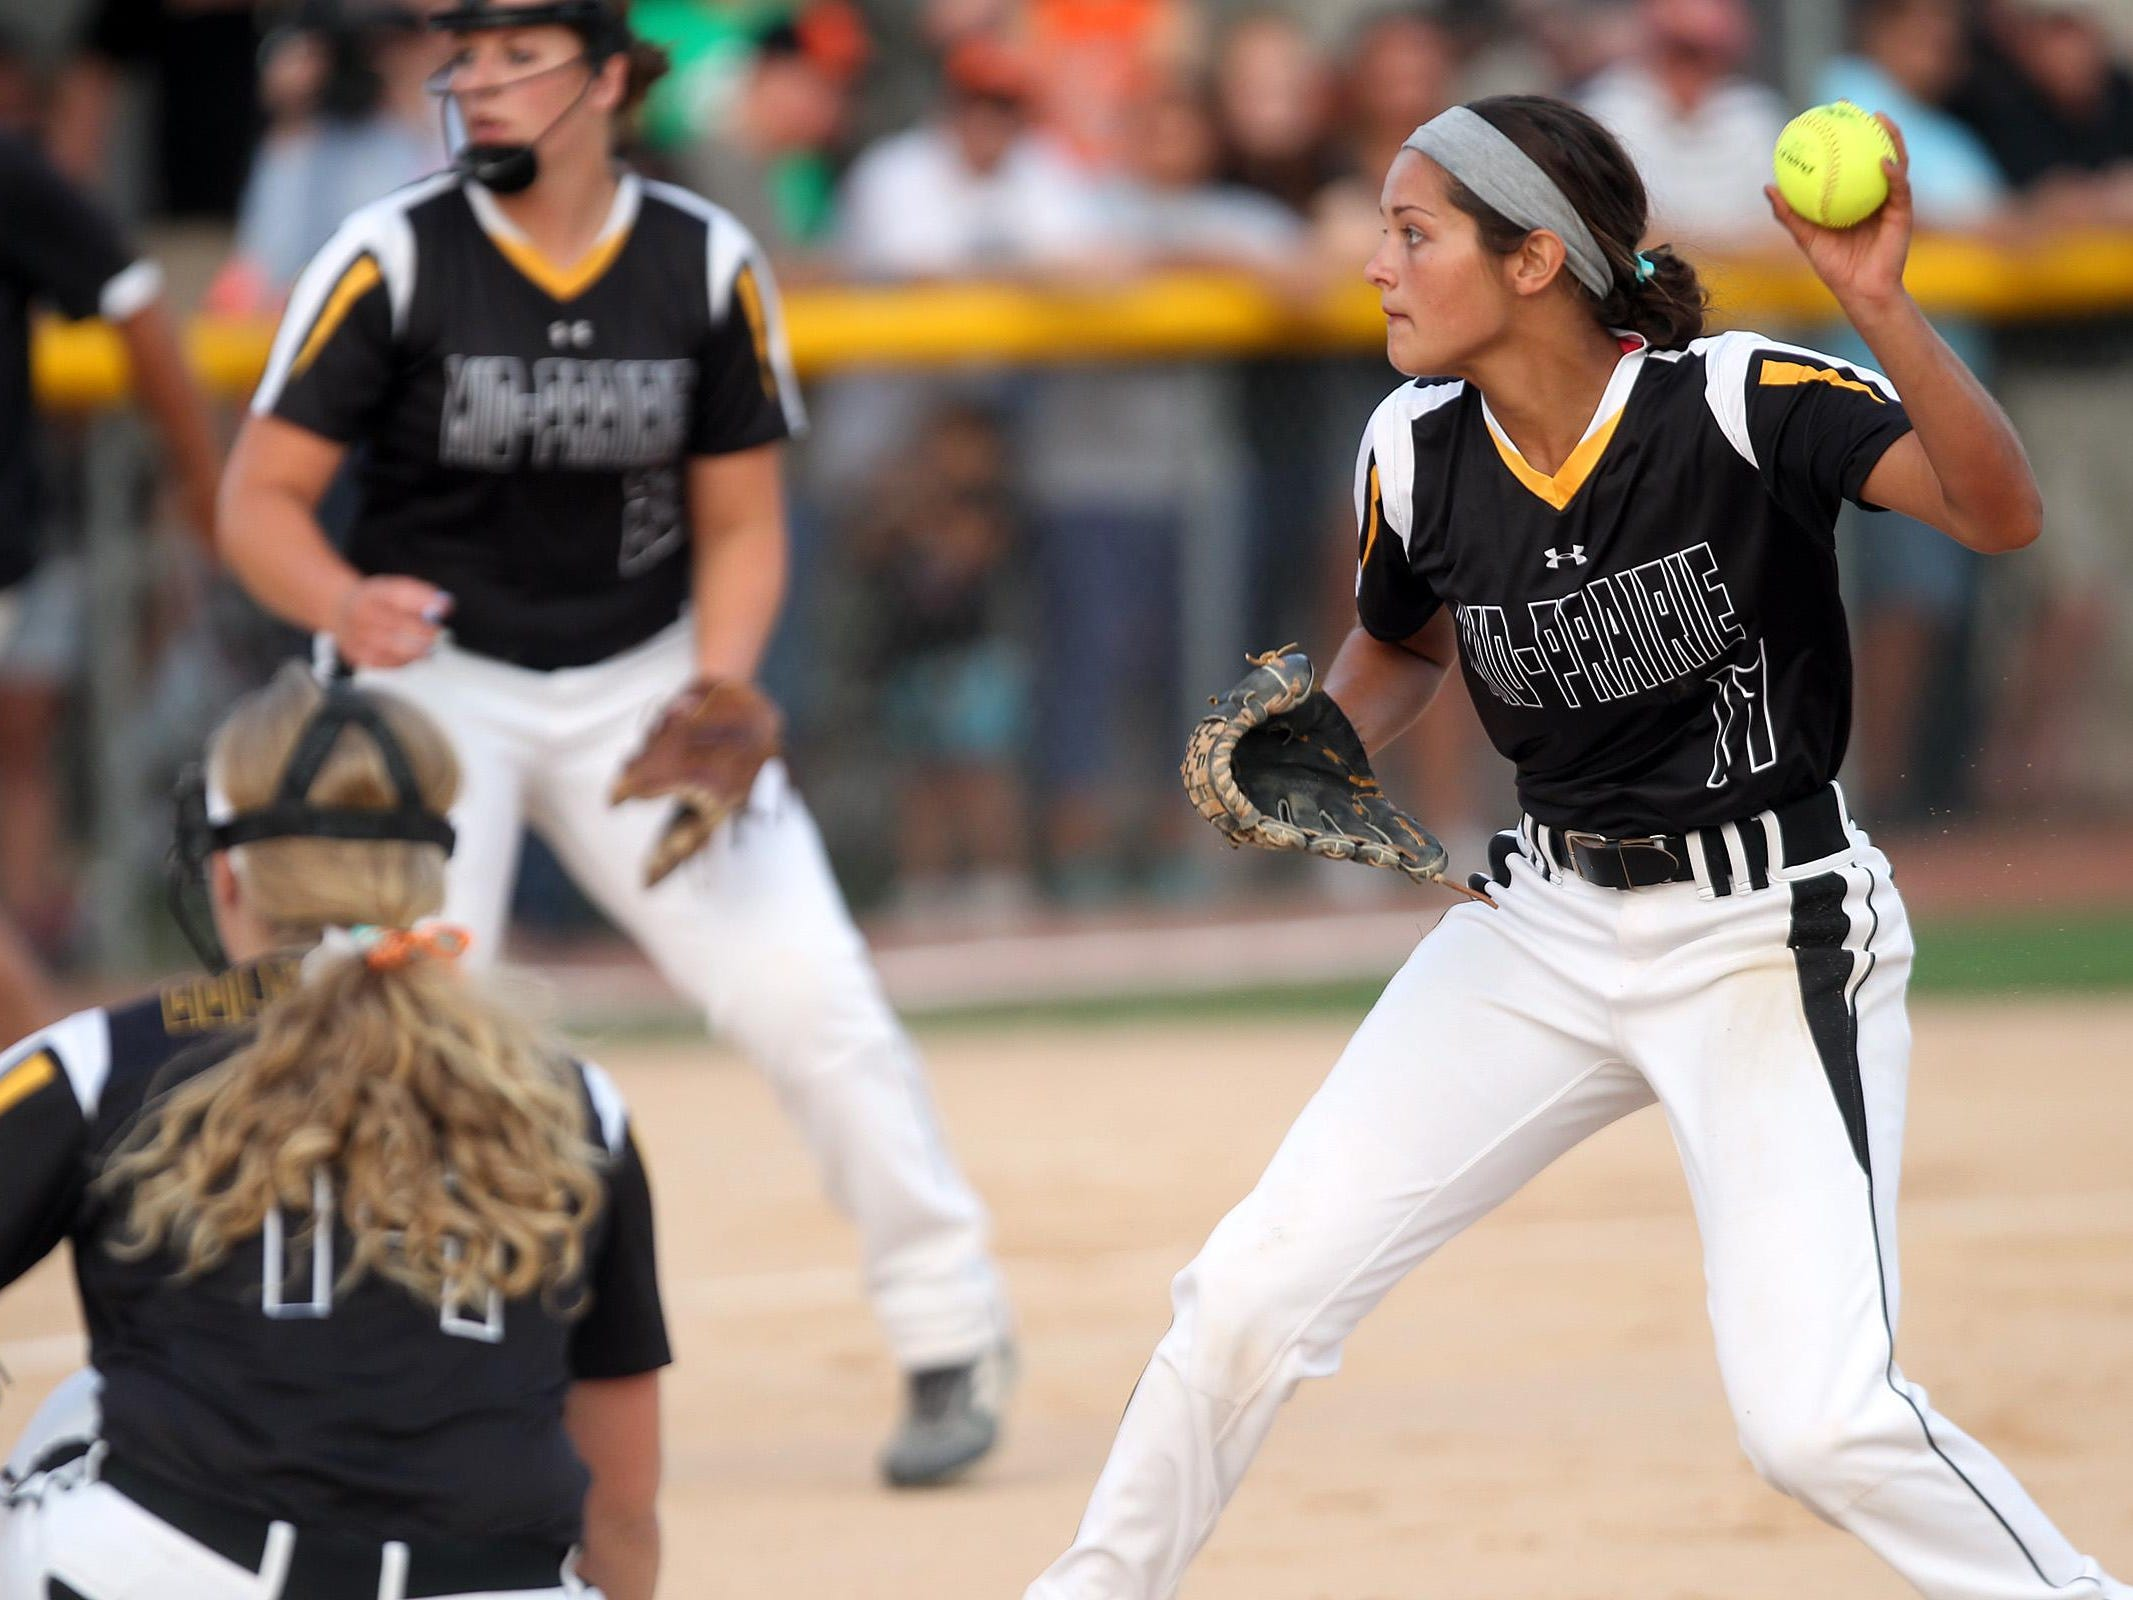 Mid-Prairie pitcher Emma Troyer throws to home plate during the Golden Hawks' regional game at Solon on Friday. Solon won, 12-2.